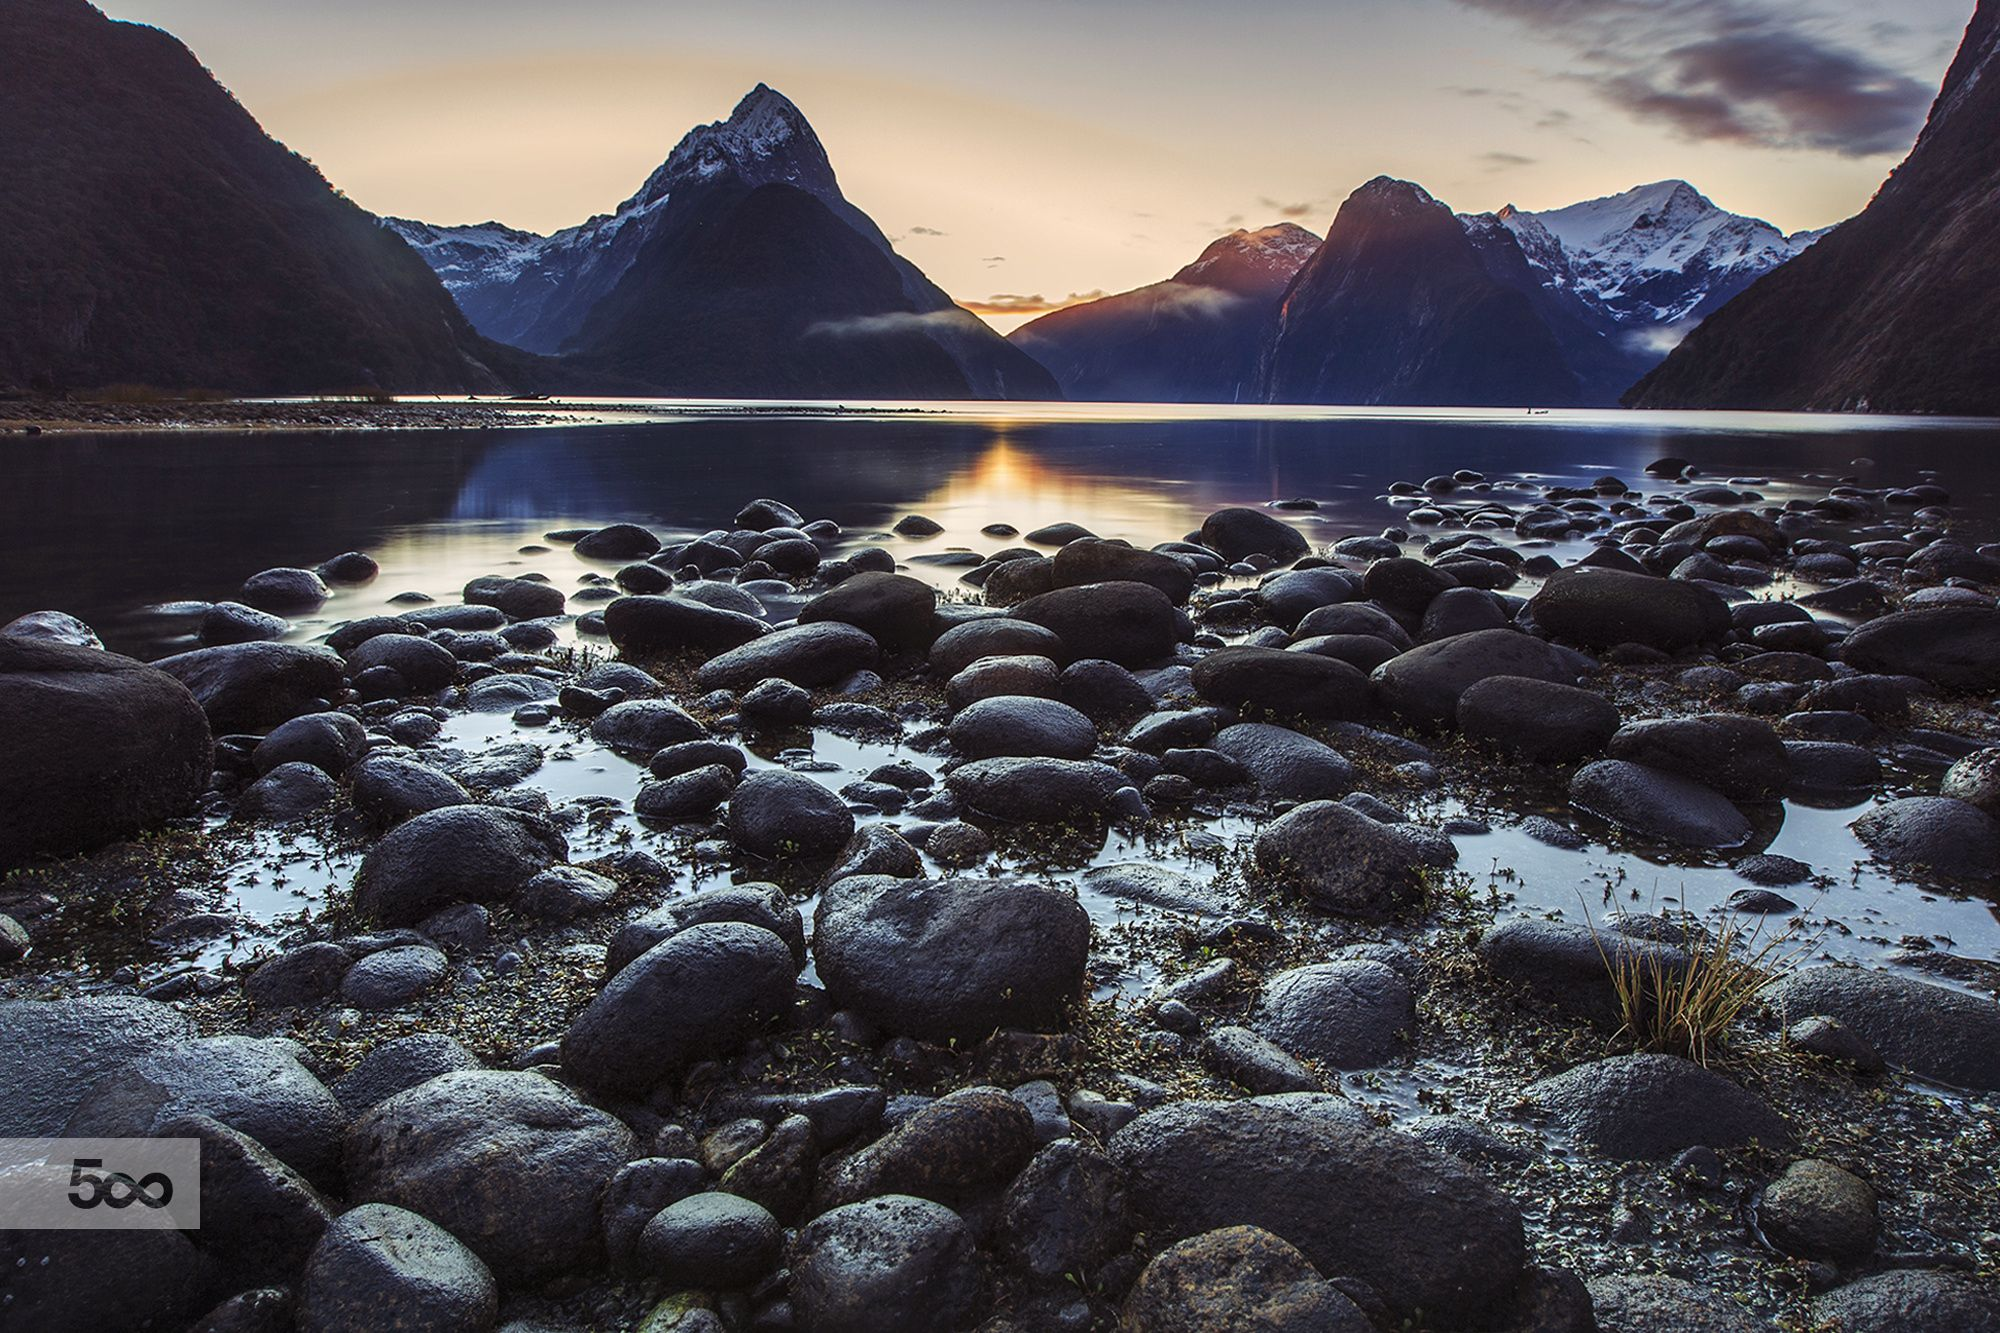 Milford Sound by Kester Rey Senson Celestino on 500px